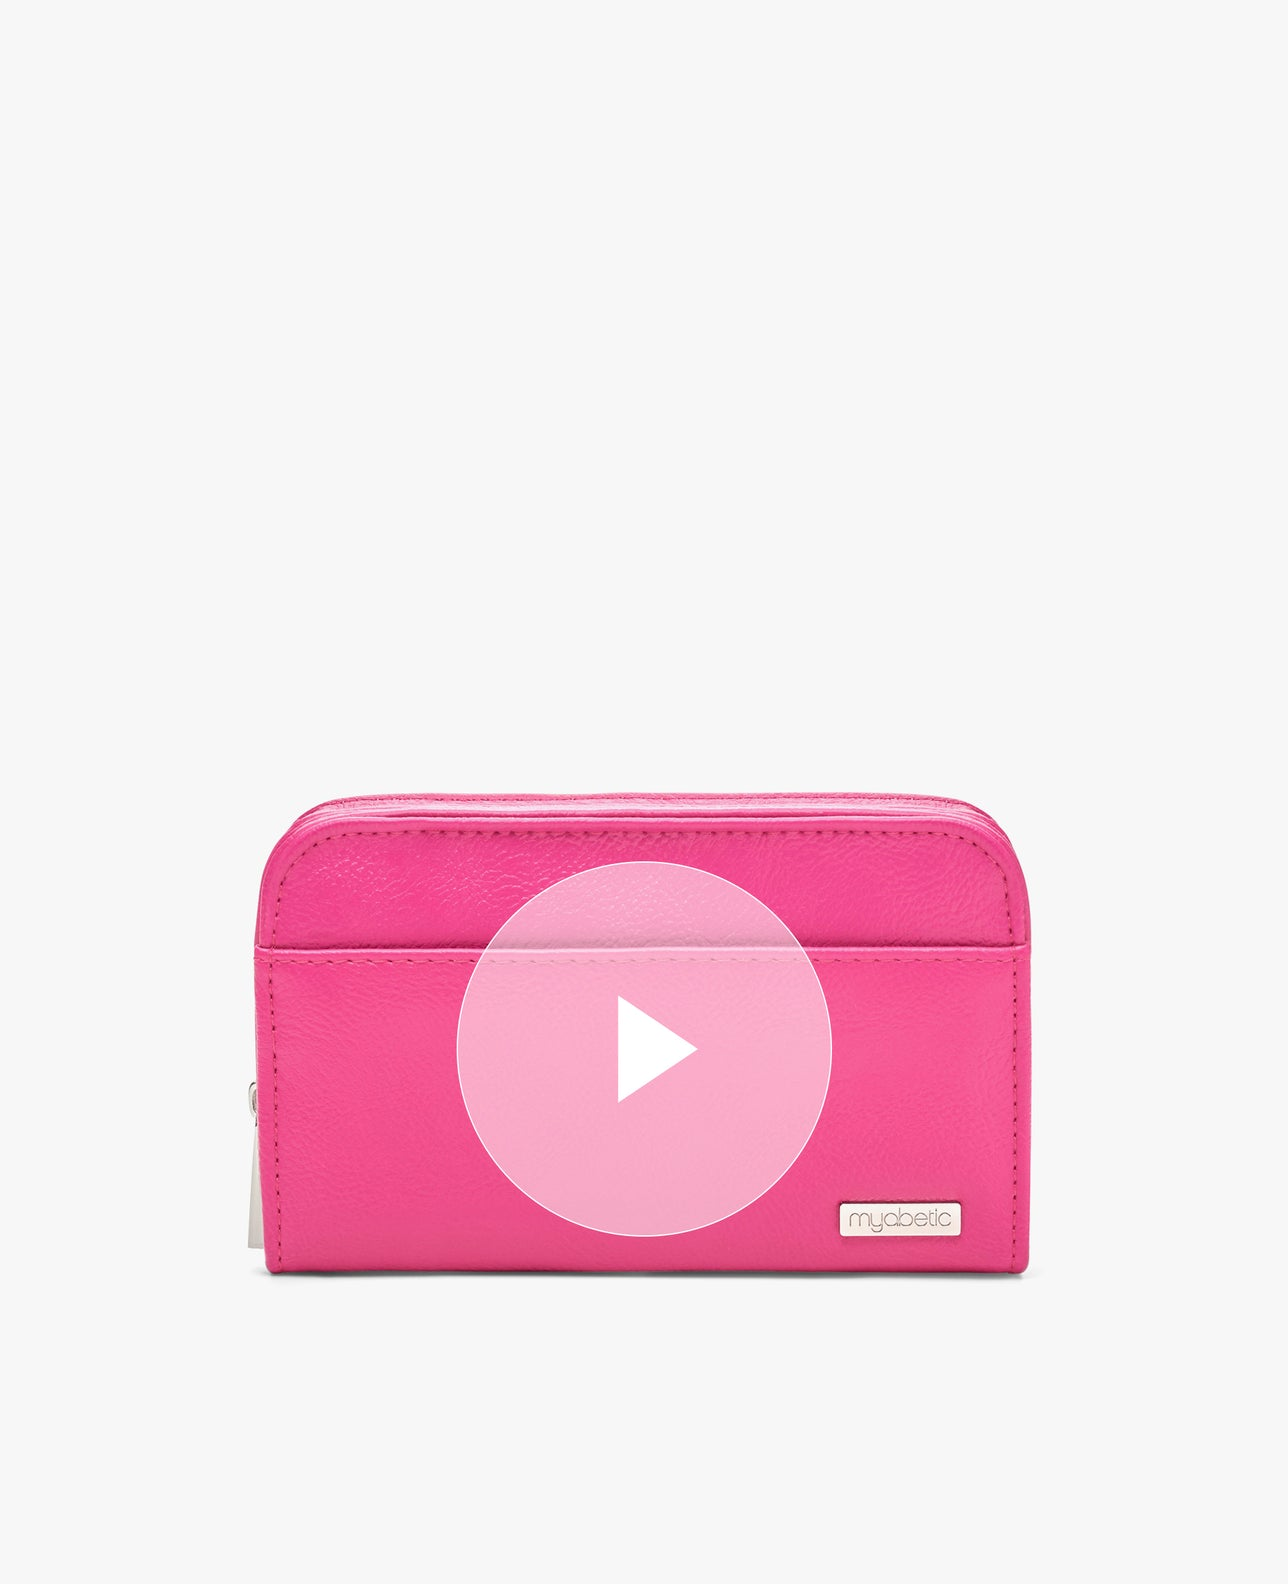 Color:Pink  https://player.vimeo.com/video/523970398